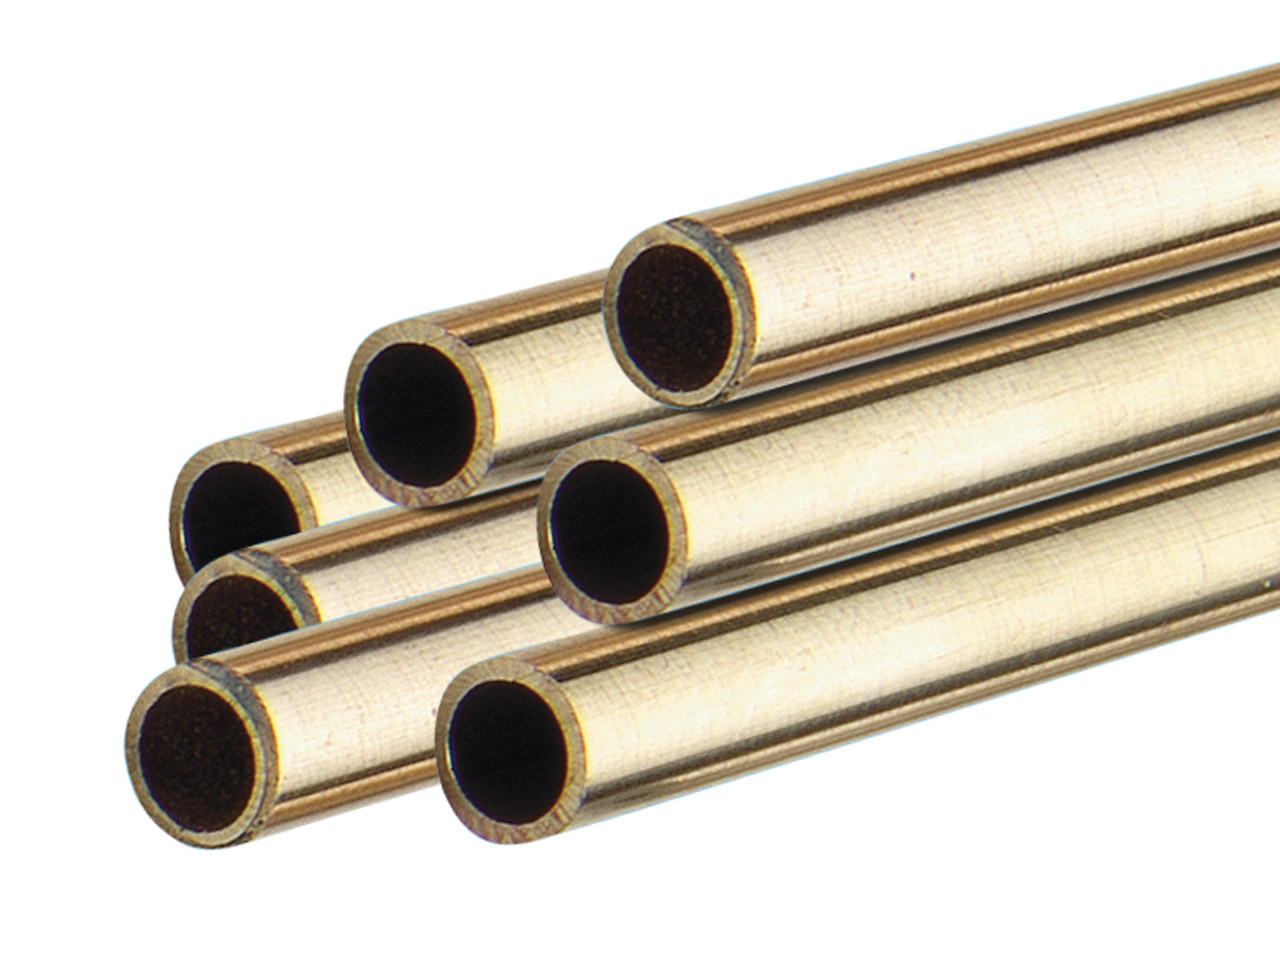 18ct Yellow HB Tube, Ref 8,        Outside Diameter 2.4mm,            Inside Diameter 1.6mm, 0.4mm Wall  Thickness